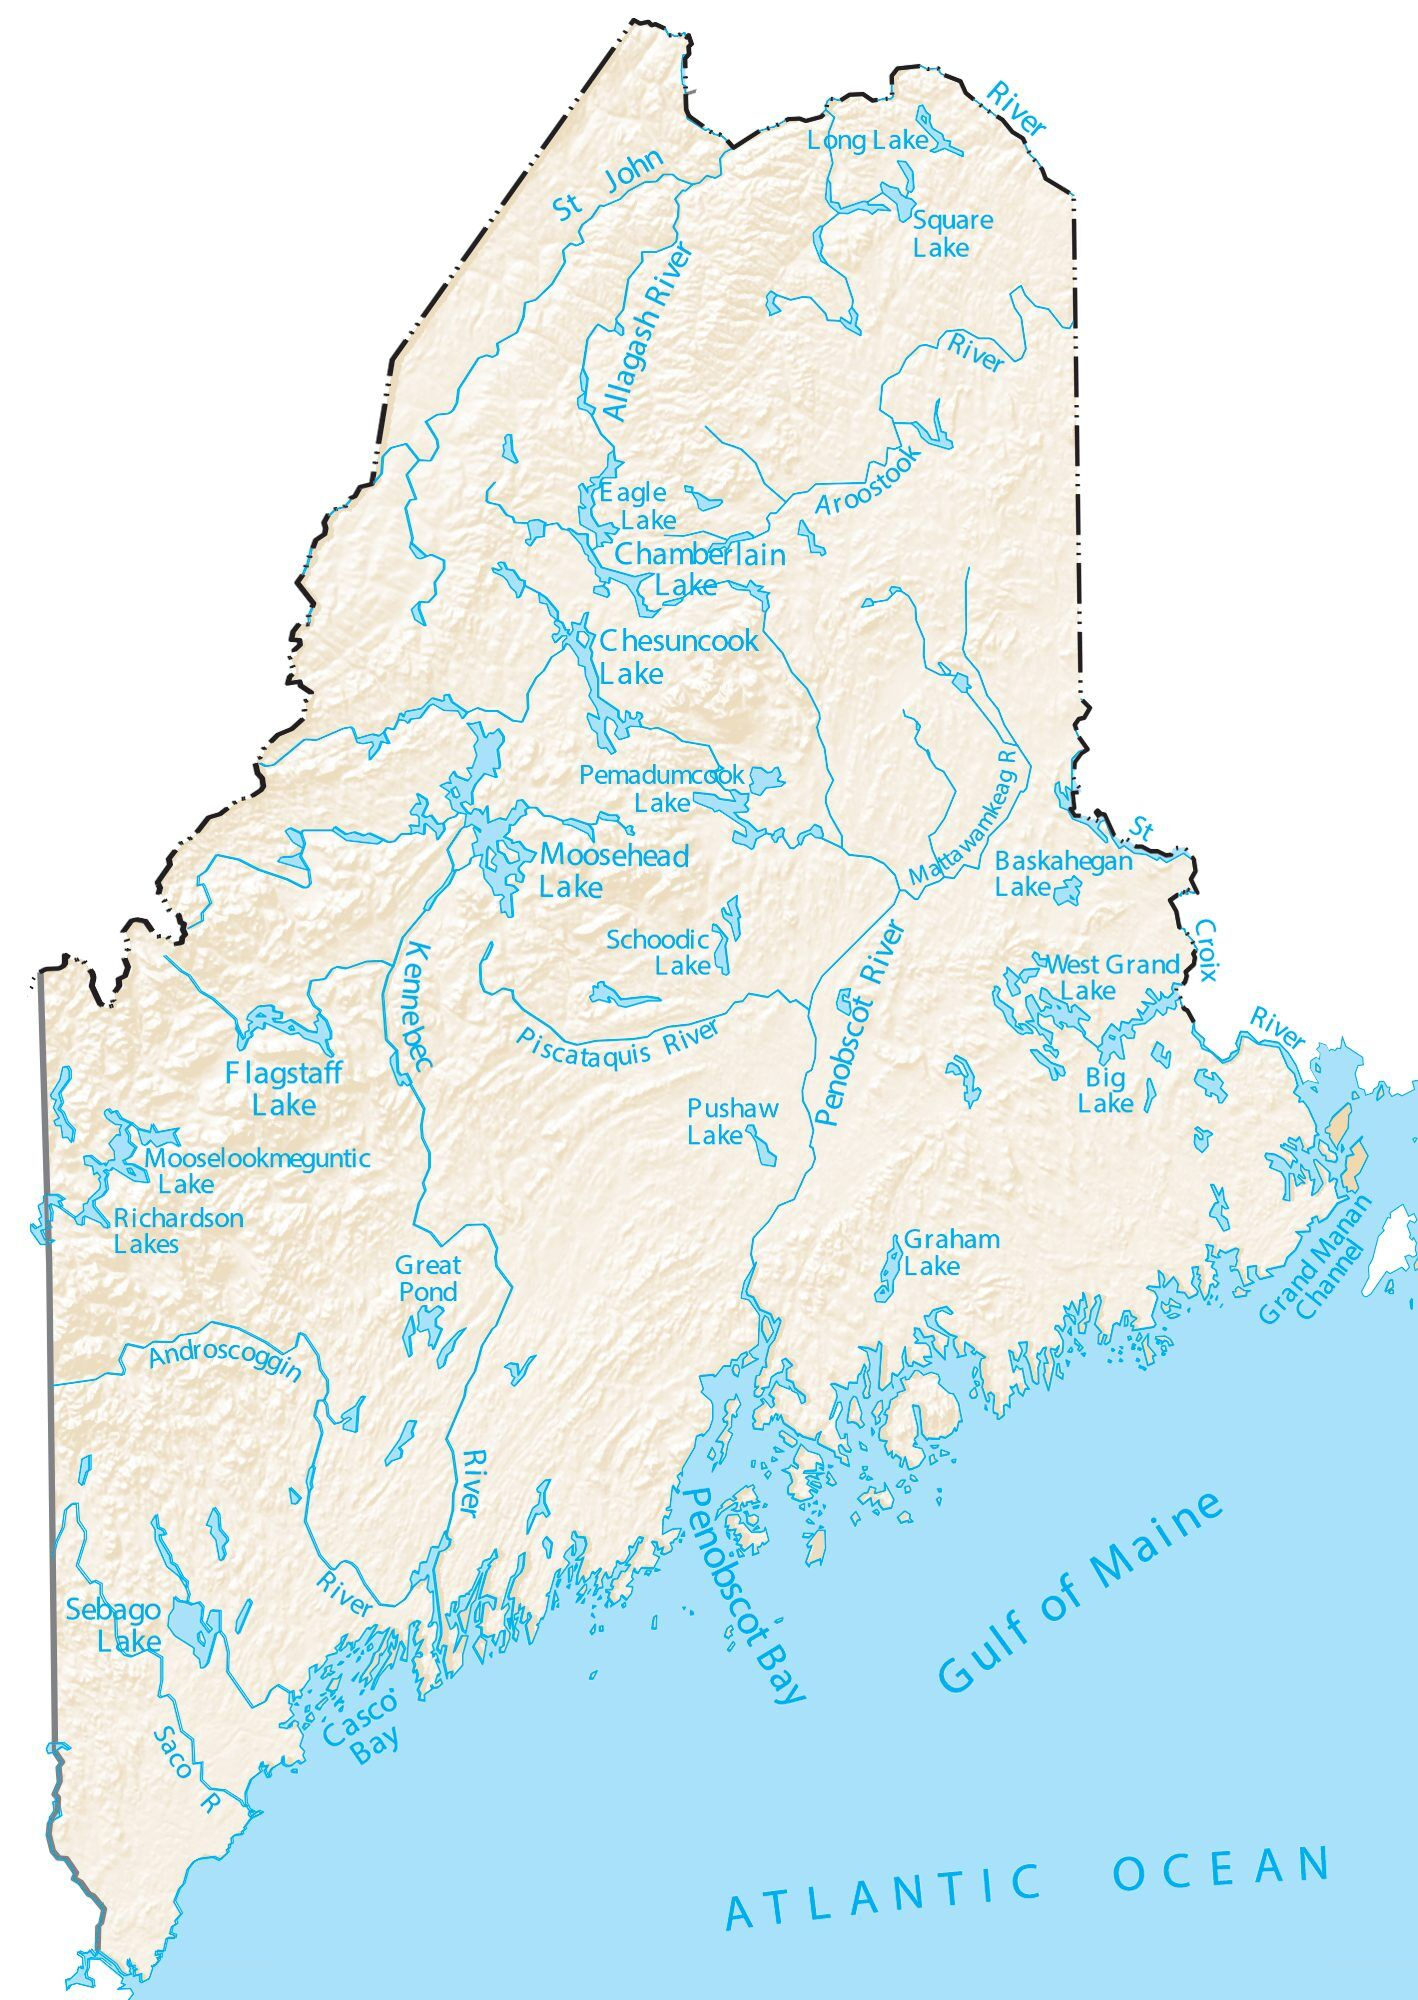 Lakes In Maine Map Maine Lakes and Rivers Map   GIS Geography